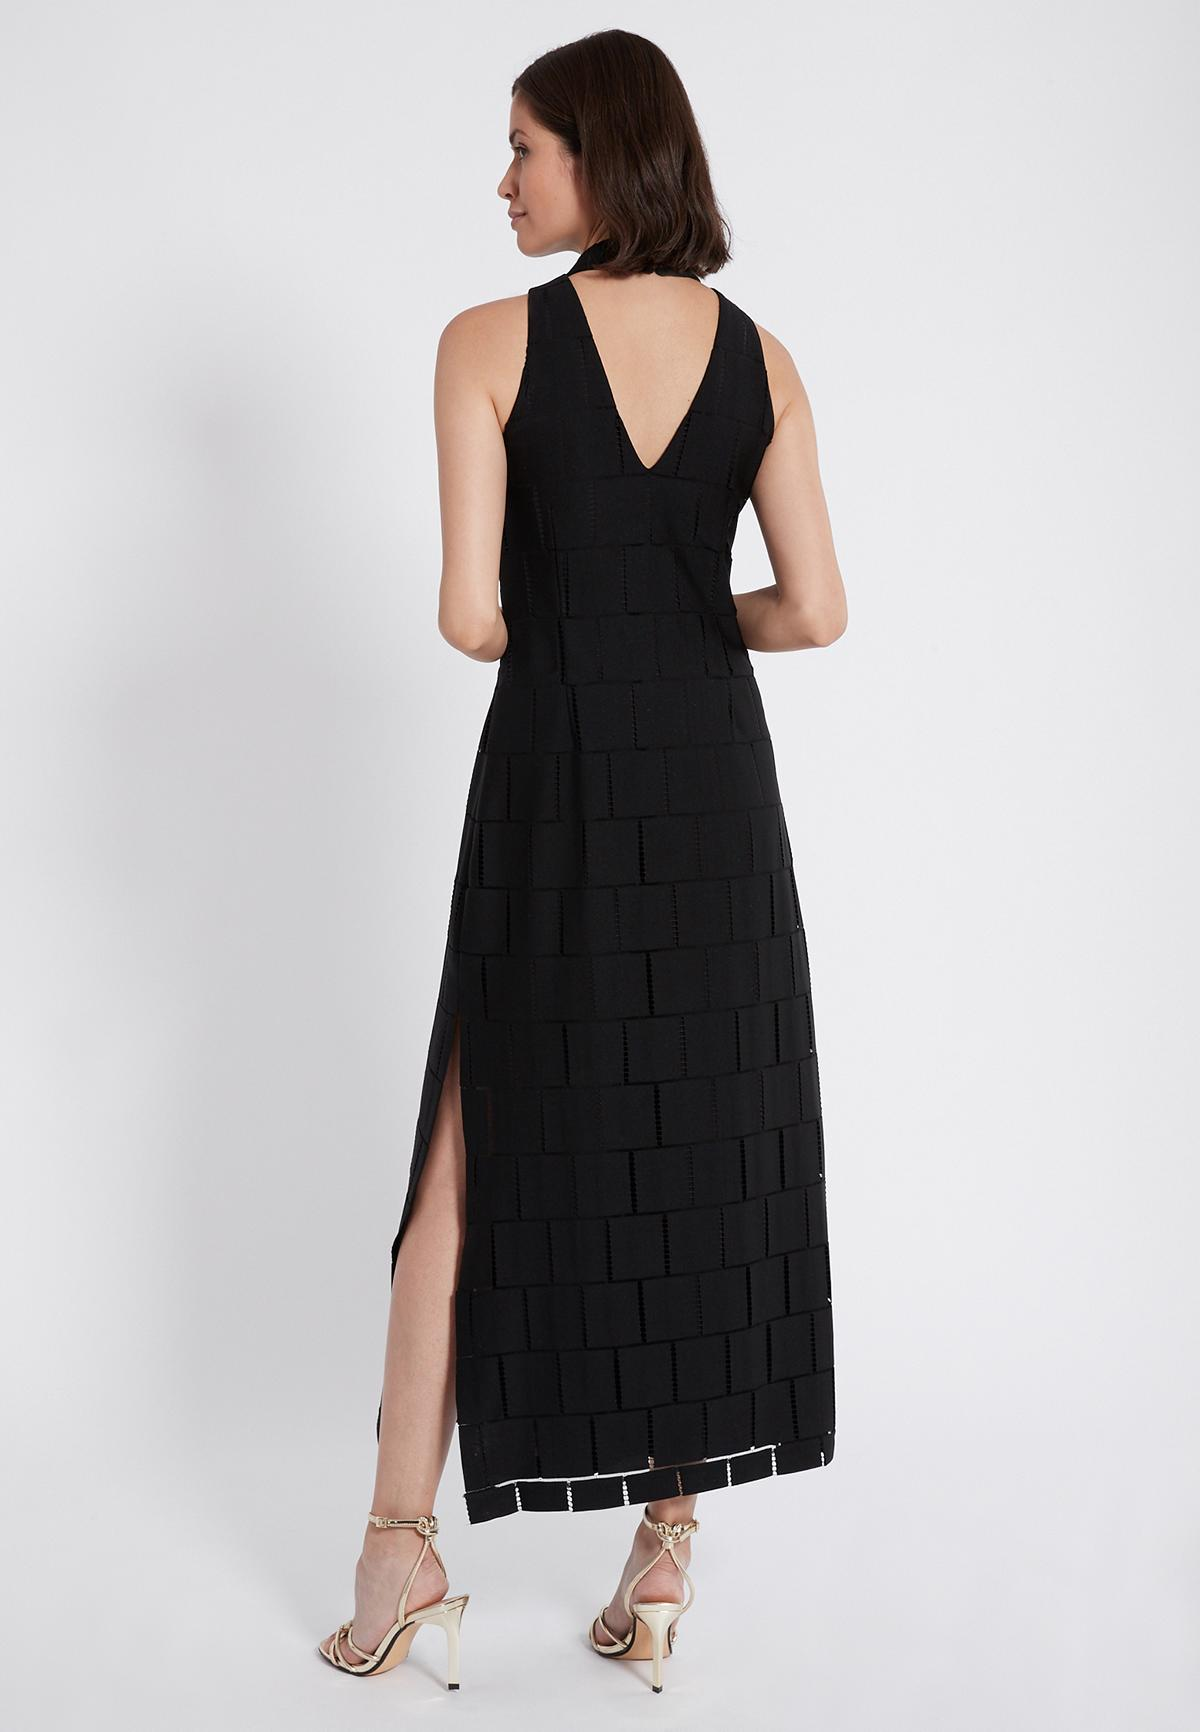 Rear view of Ana Alcazar Maxi Dress Samita Black  worn by model